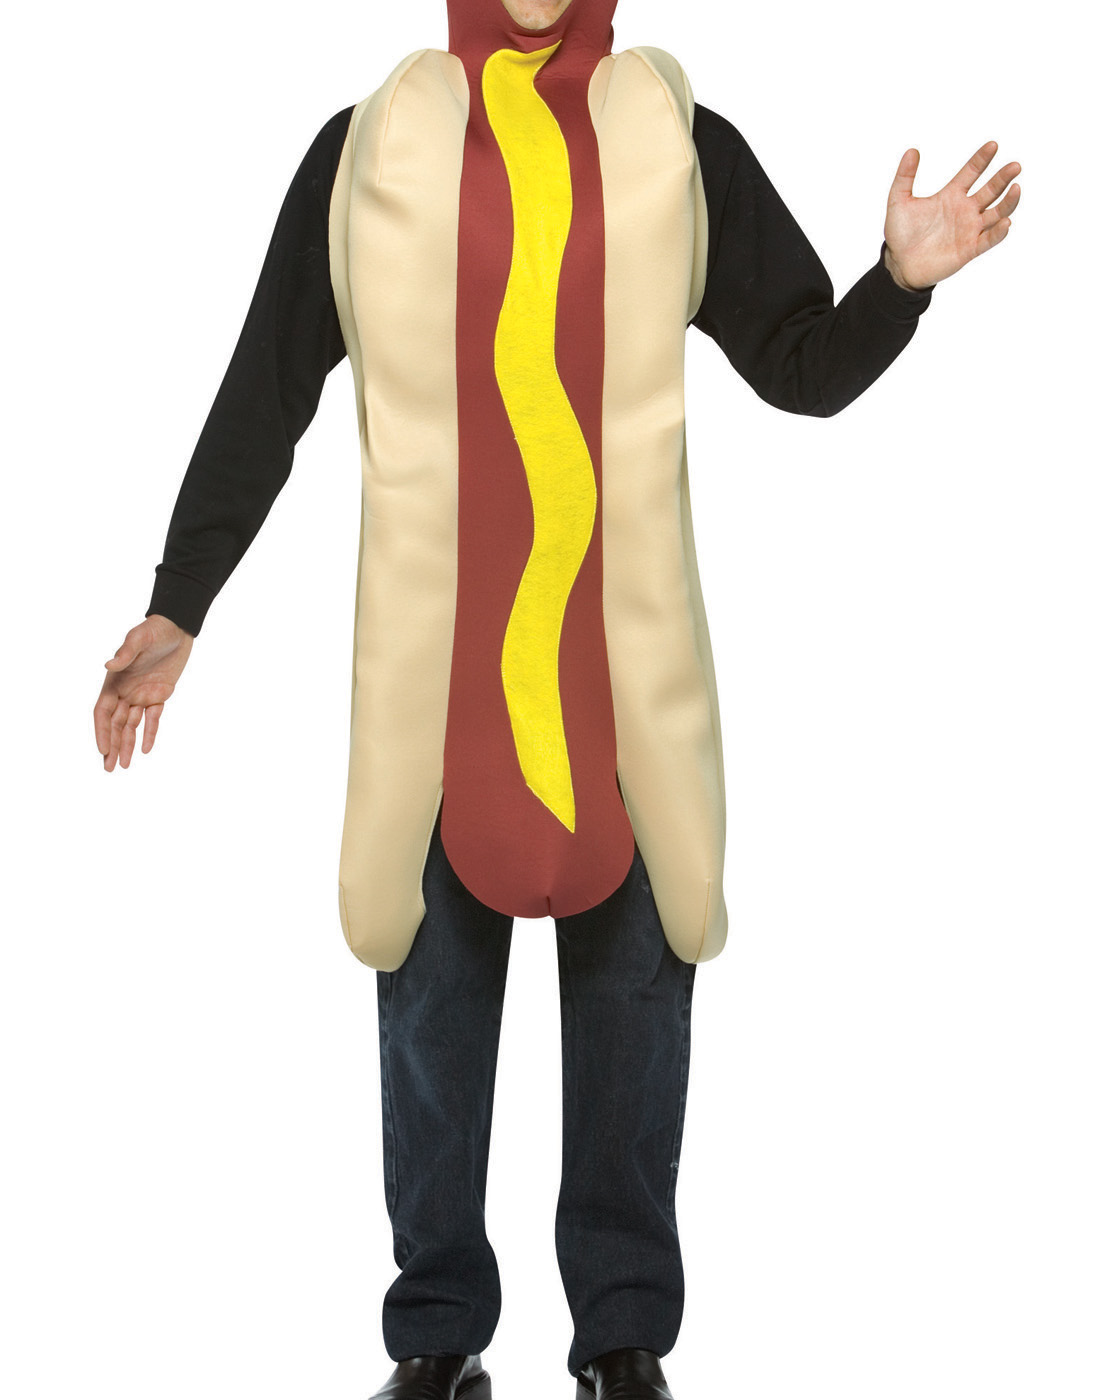 hot dog adult halloween costume - one size - walmart